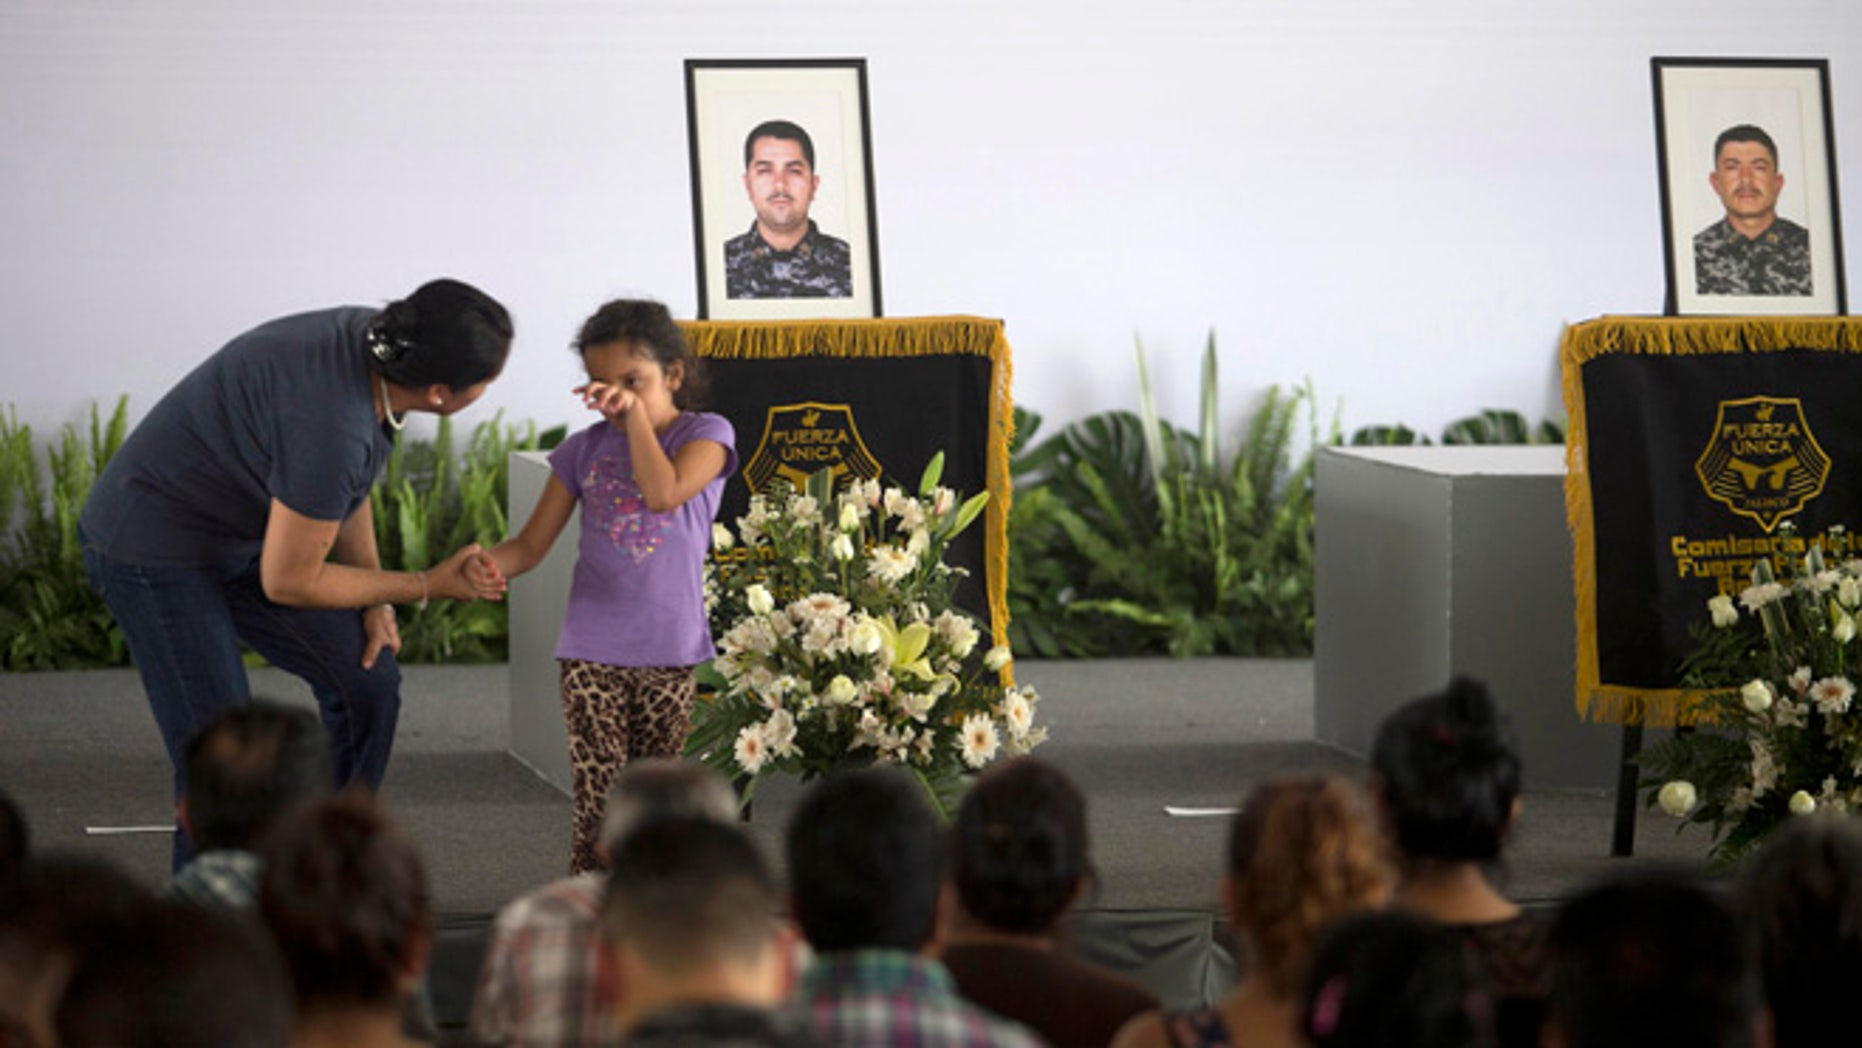 A girl weeps during a ceremony to honor slain policemen in Tlaquepaque, Mexico, Wednesday, April 8, 2015.